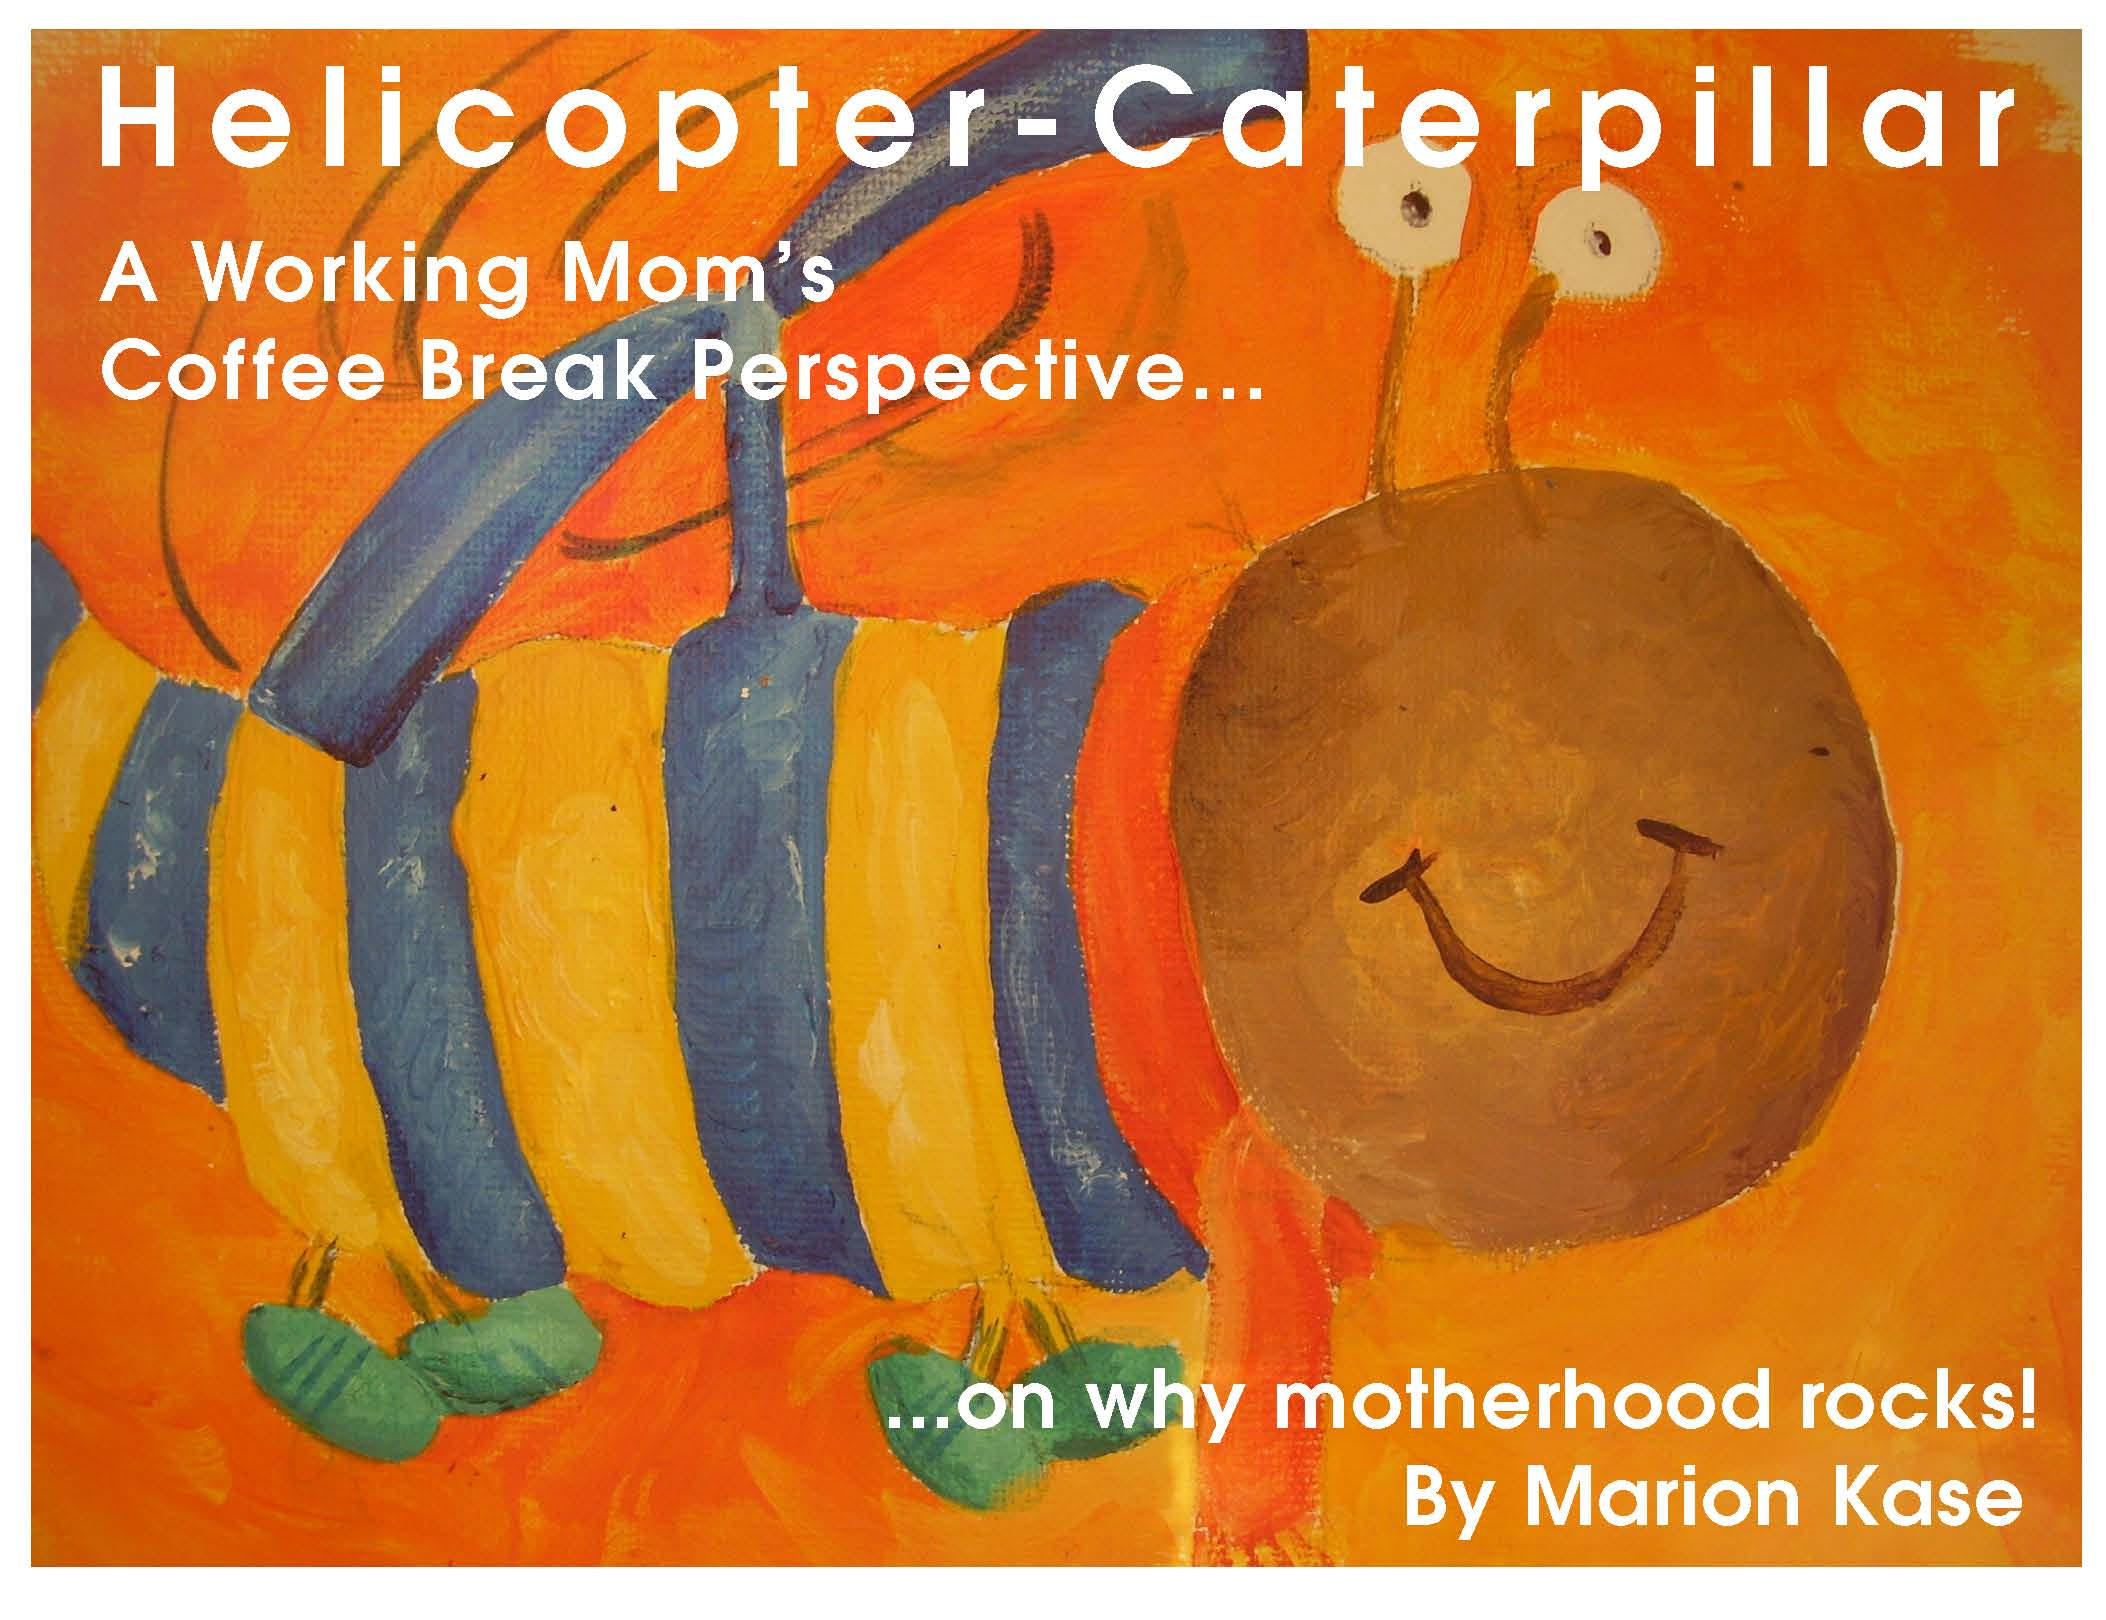 Helicopter-Caterpillar button